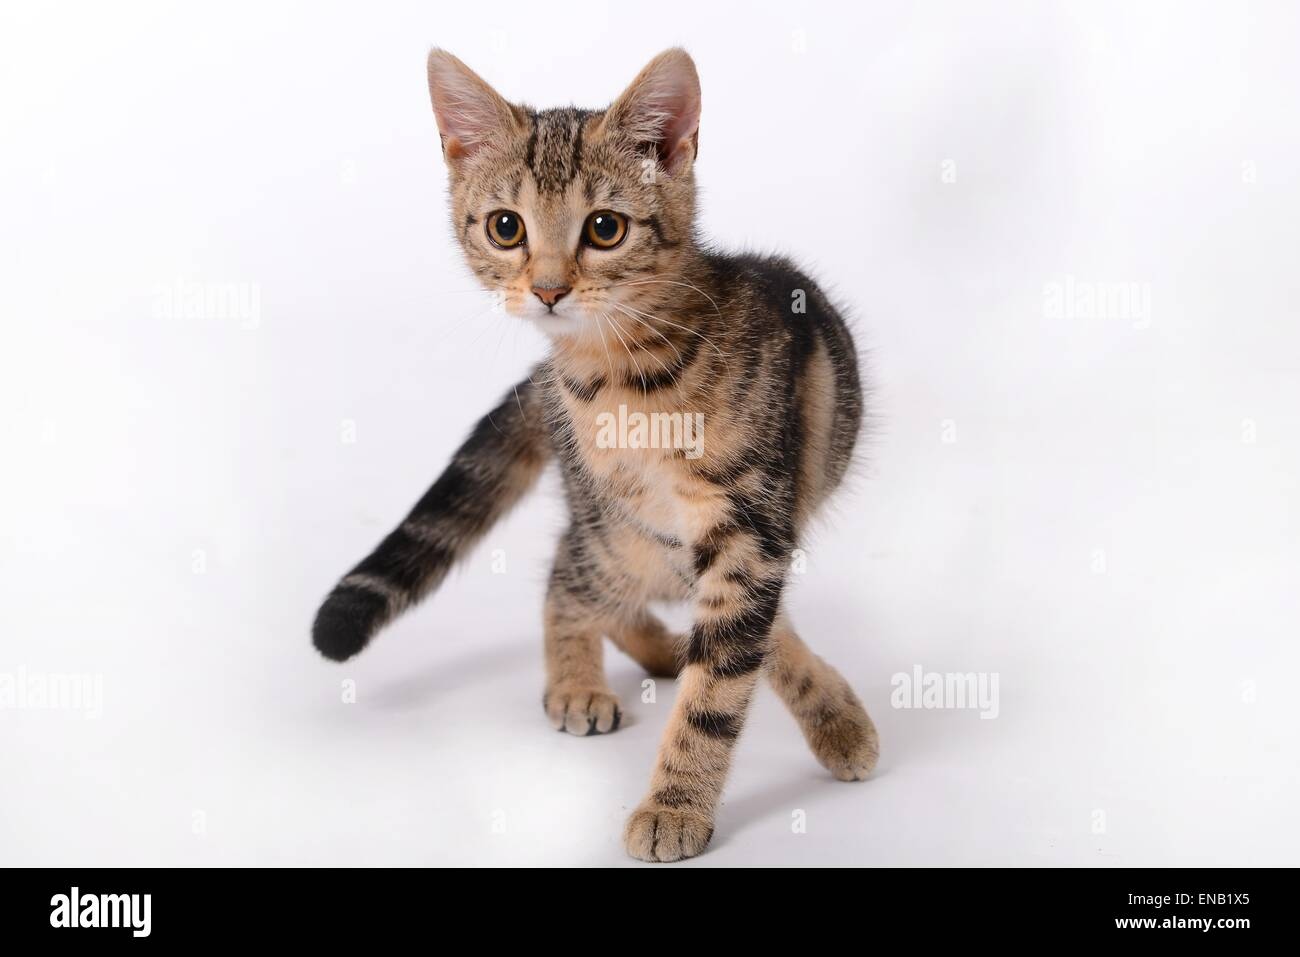 Tabby kitten on a white background in a standing pose - Stock Image